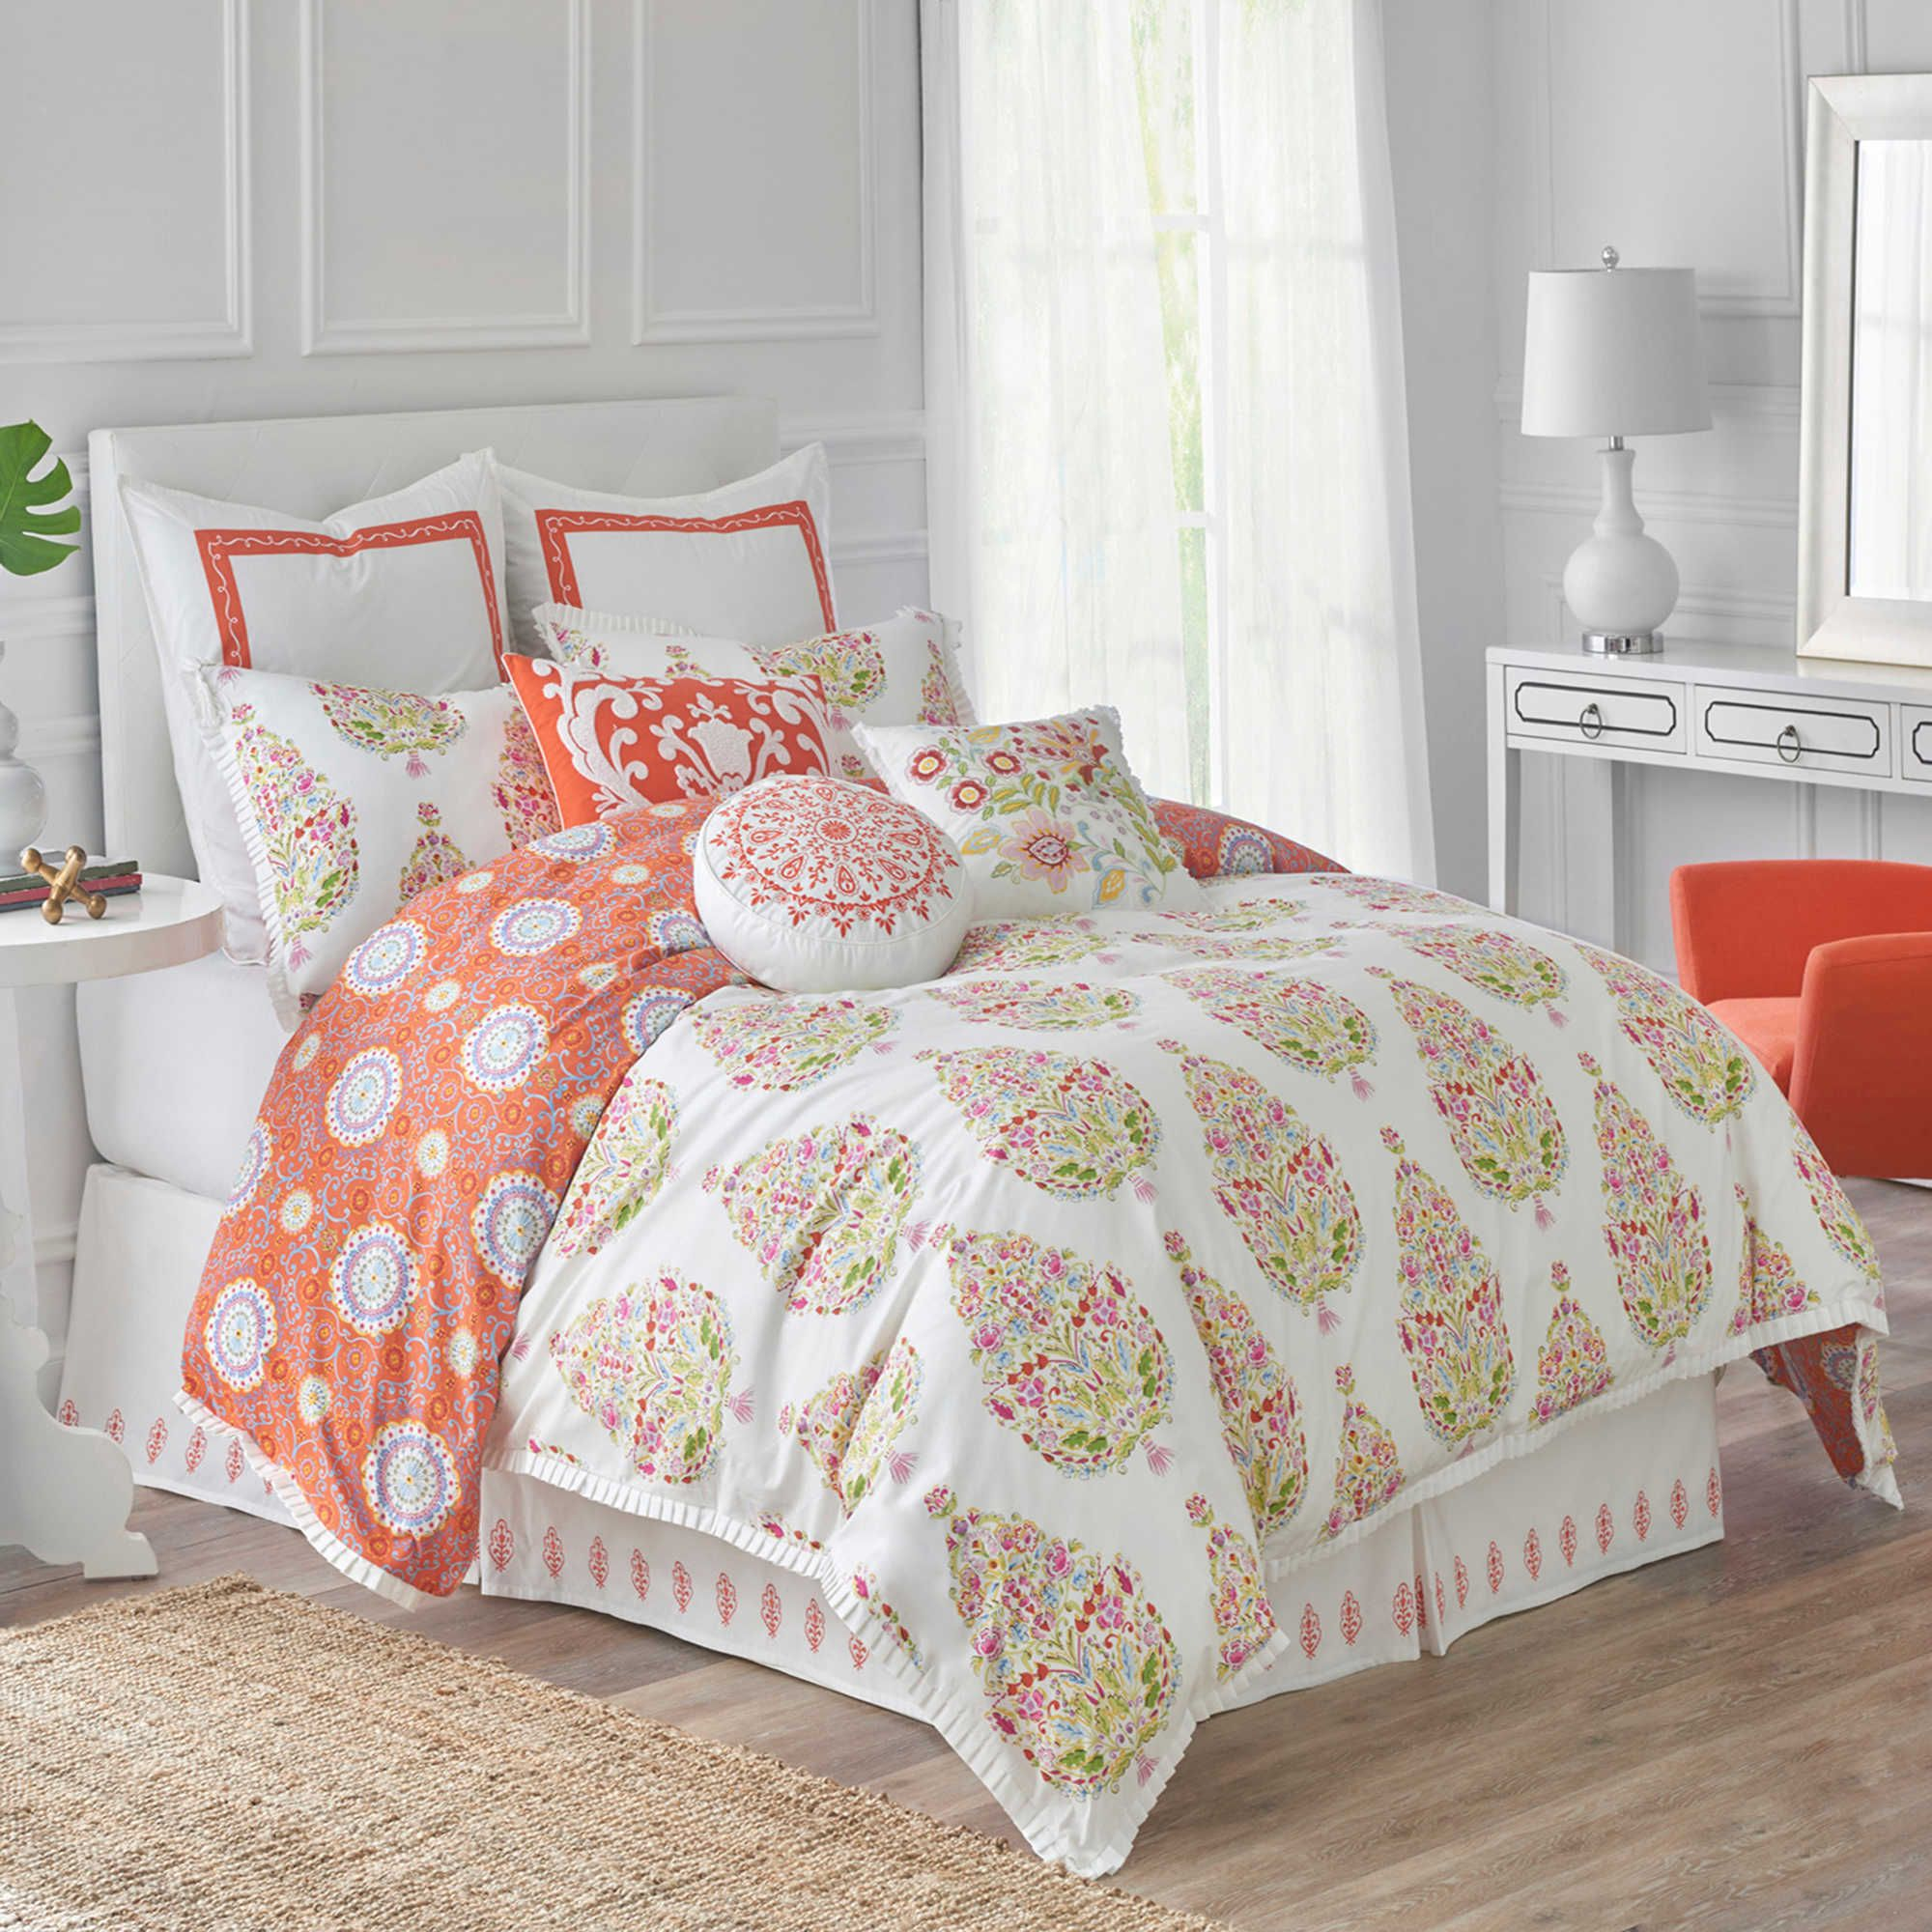 orange pattern stunning in rustic sets comforter comforters king bedspreads sears bed sheets decoration bedroom bedding for extraordinary ideas c wayfair walmart moroccan